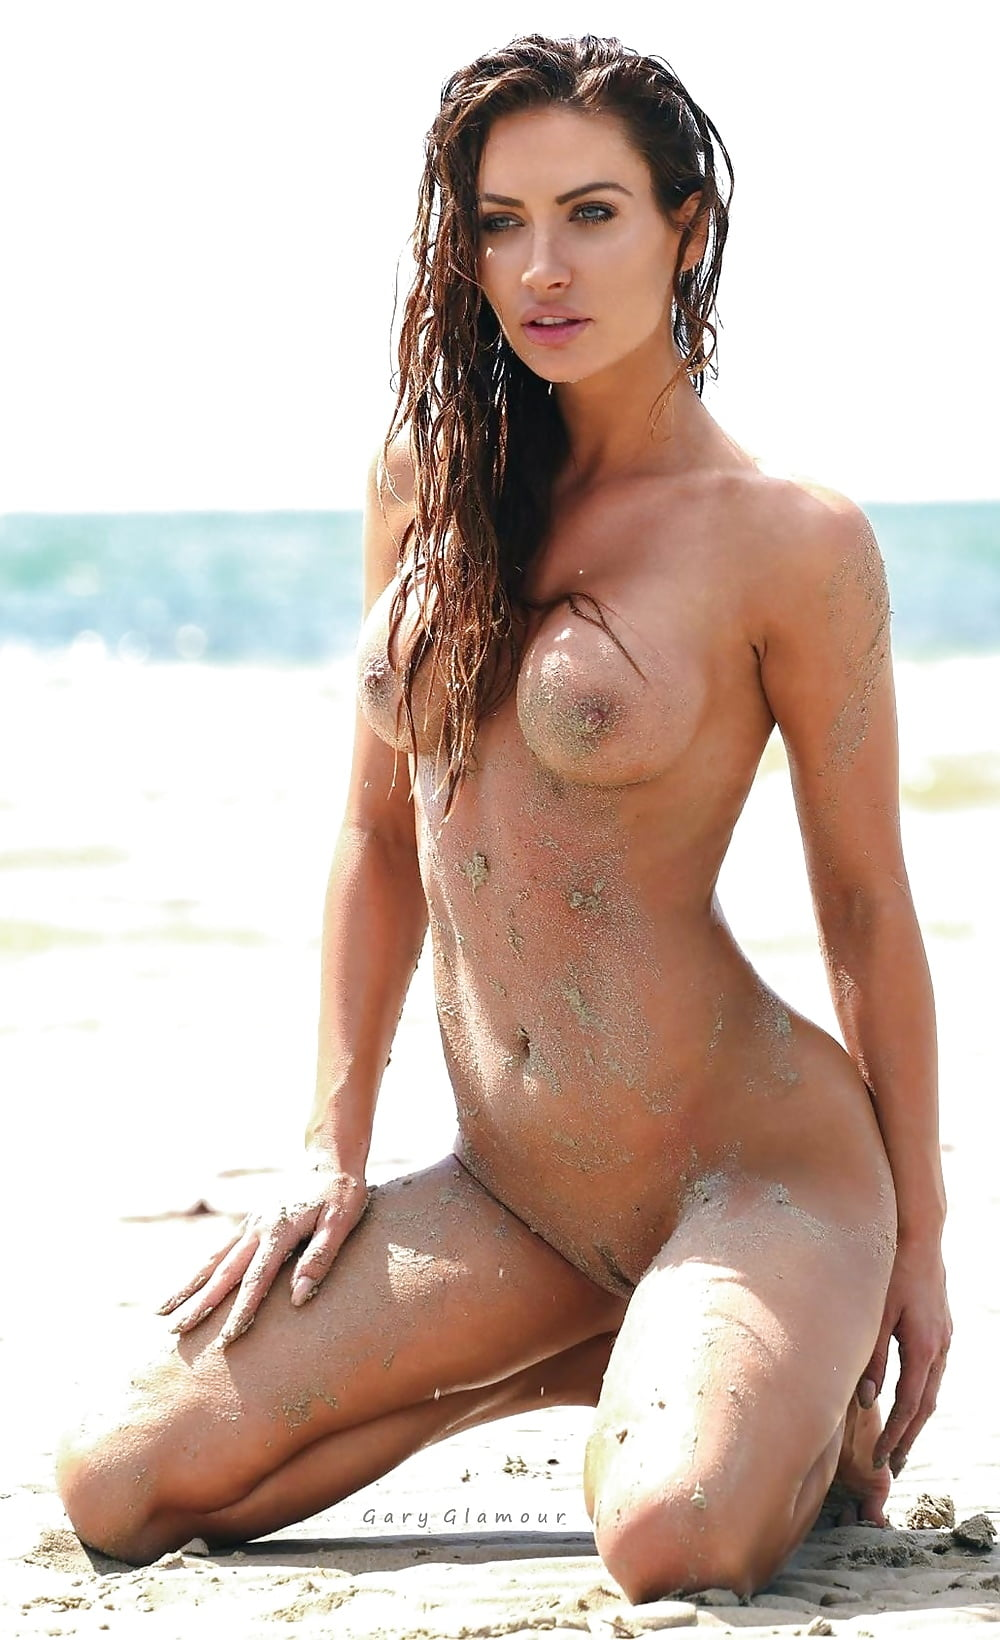 Ftv girl carolyn nude